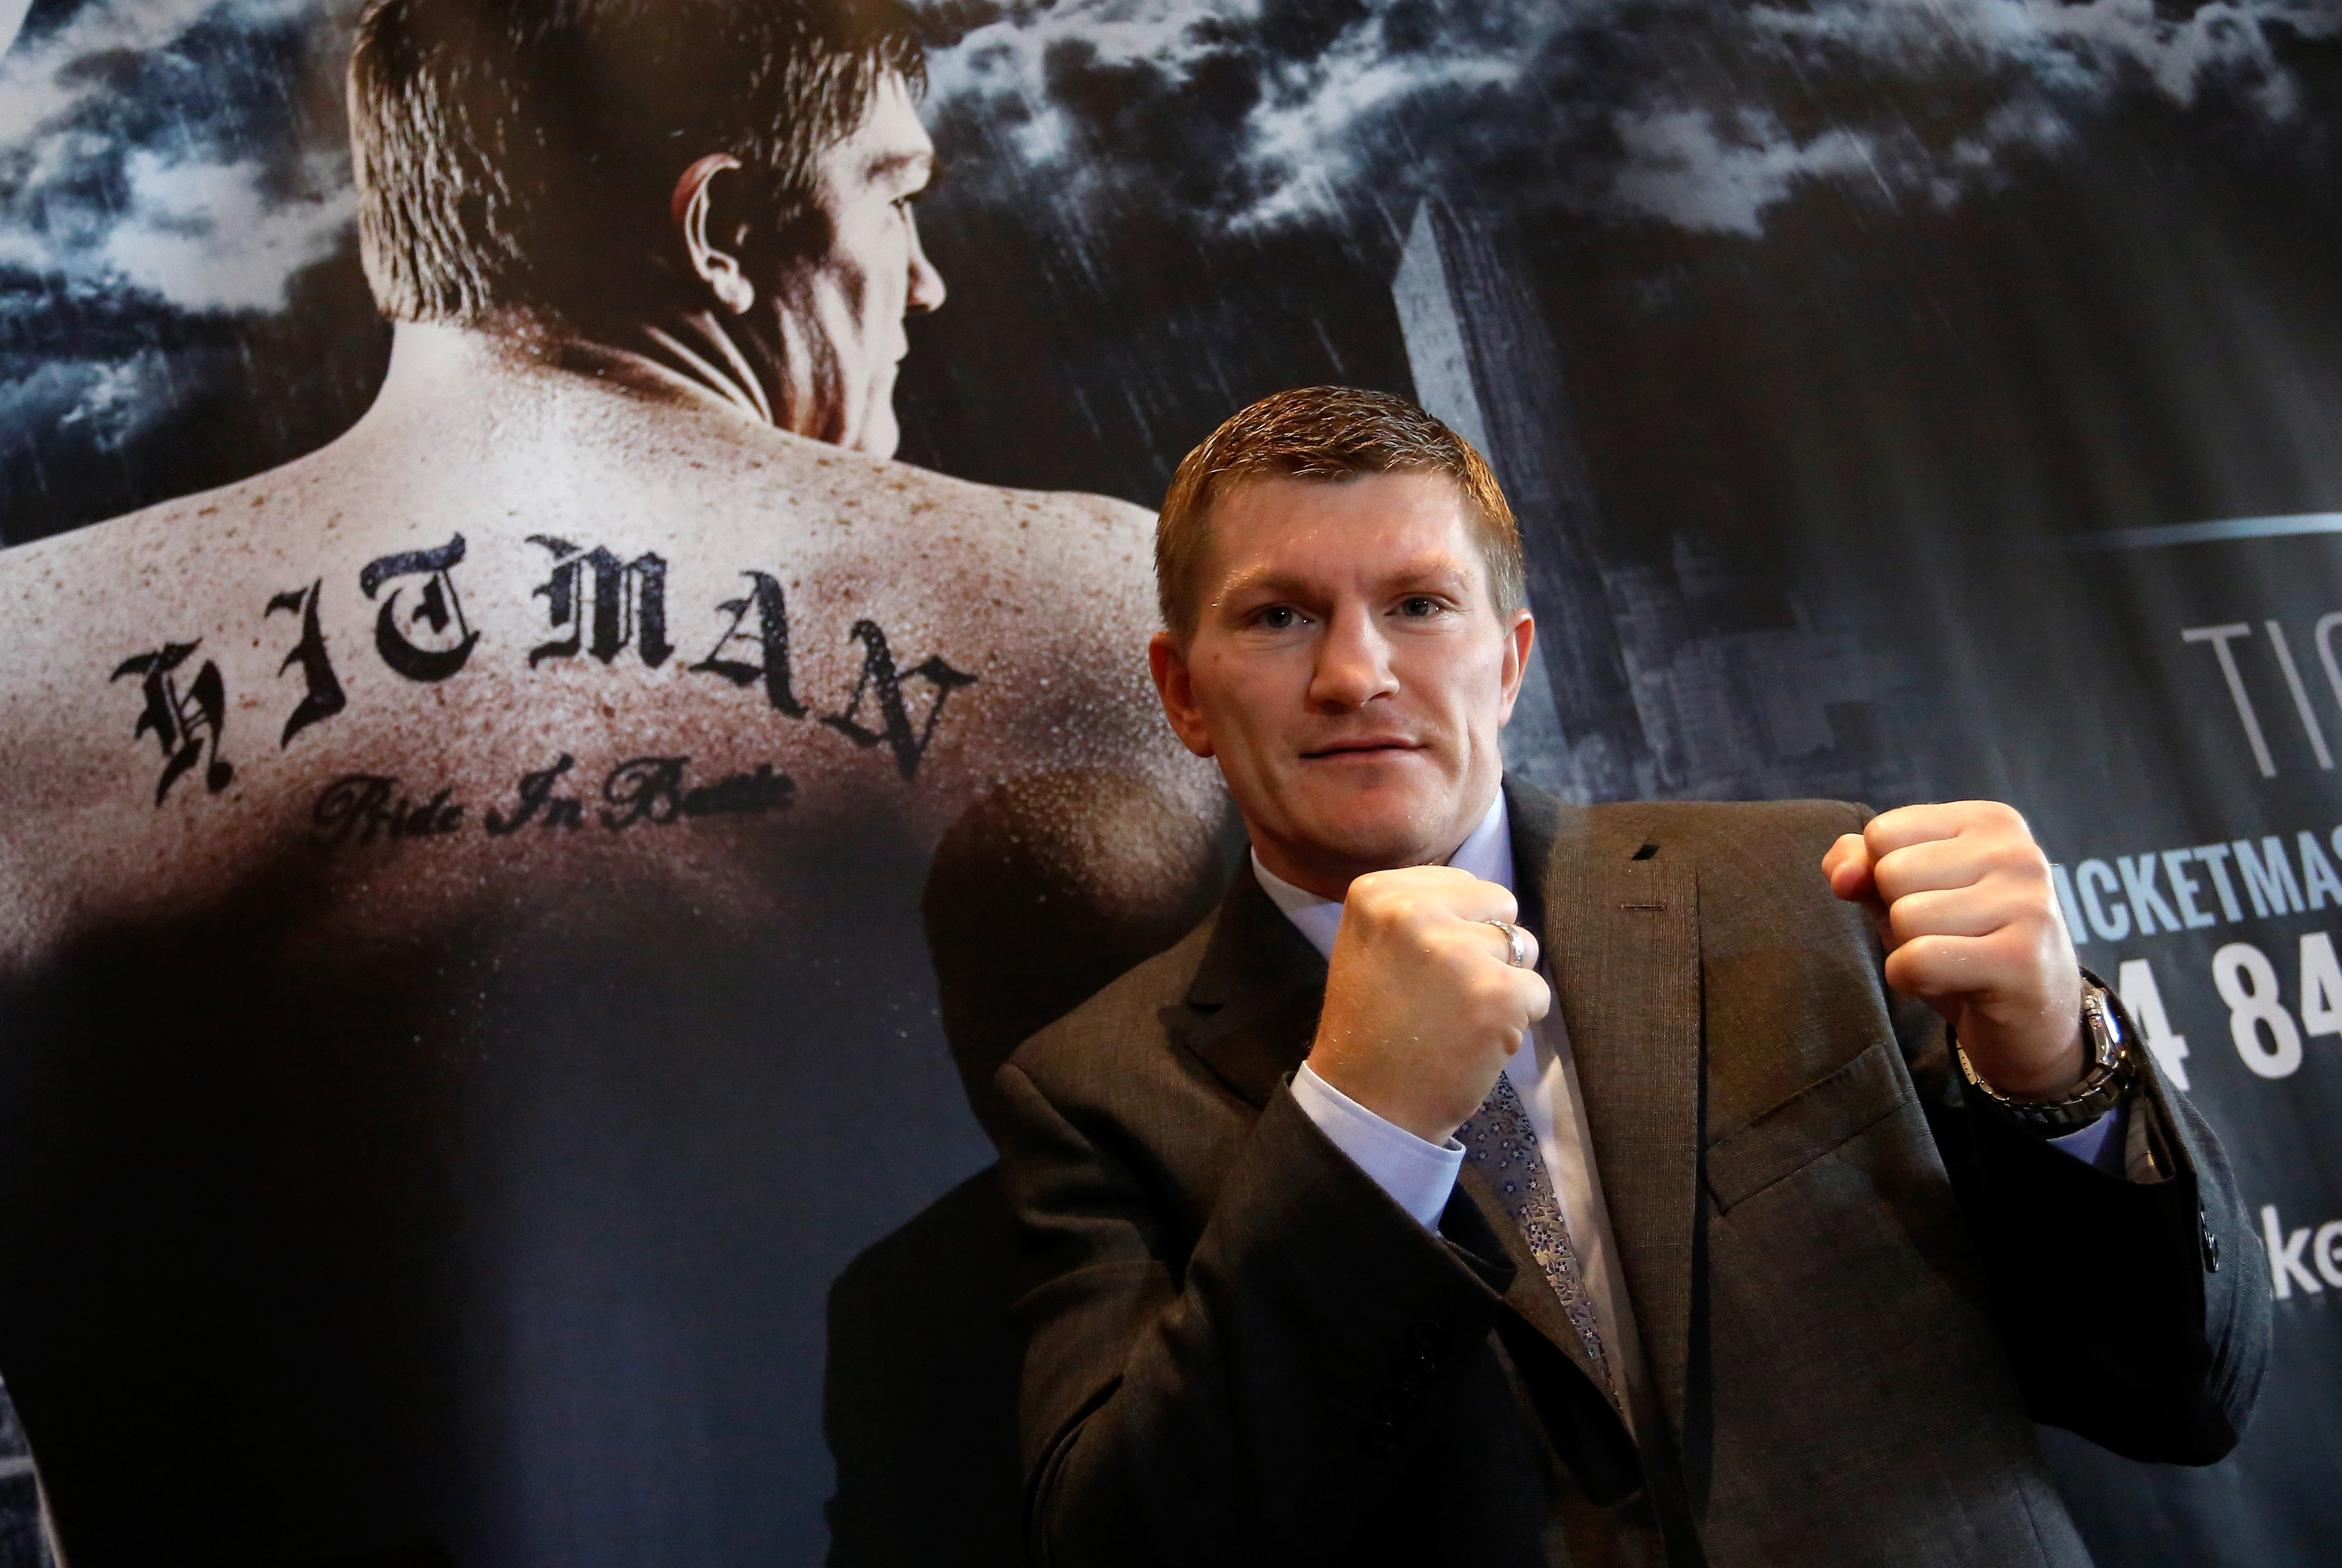 Ricky Hatton says that 10,000 tickets have already been sold for his boxing return in Manchester on November 24. (Photo by Paul Thomas/Getty Images)